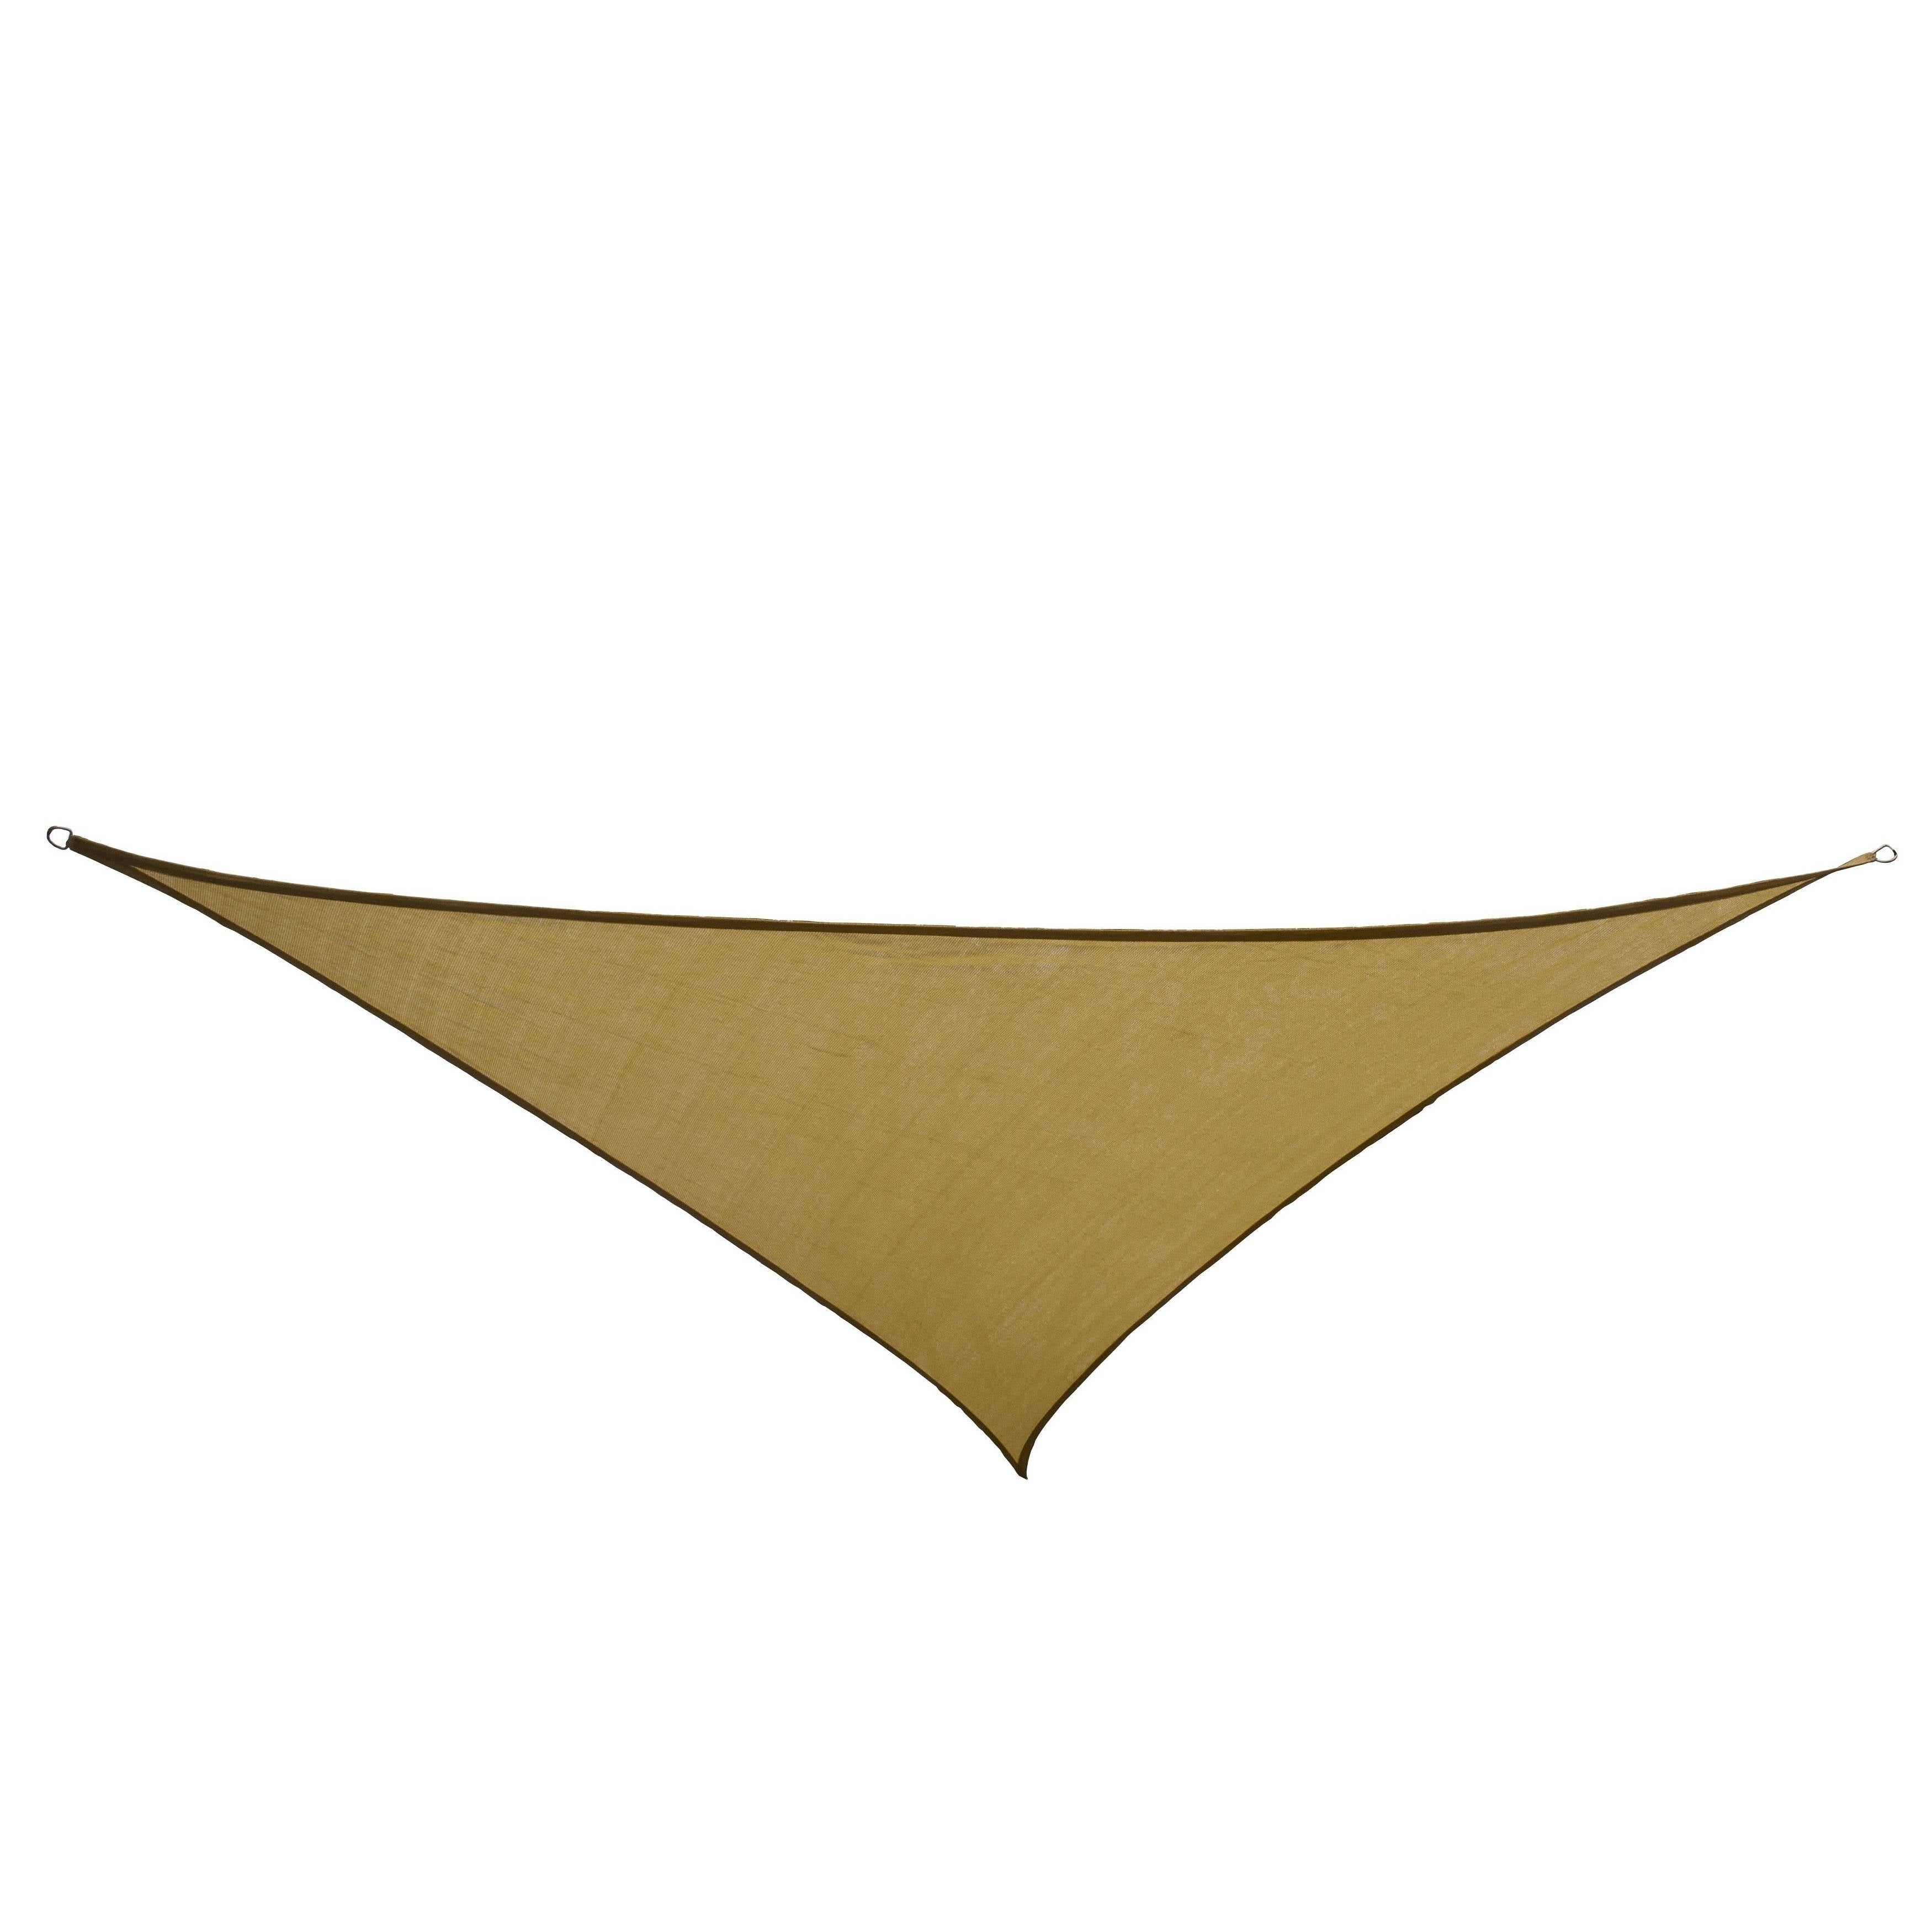 Cool Area 11.5-foot Golden Triangle Sail Sun Shade and Ha...